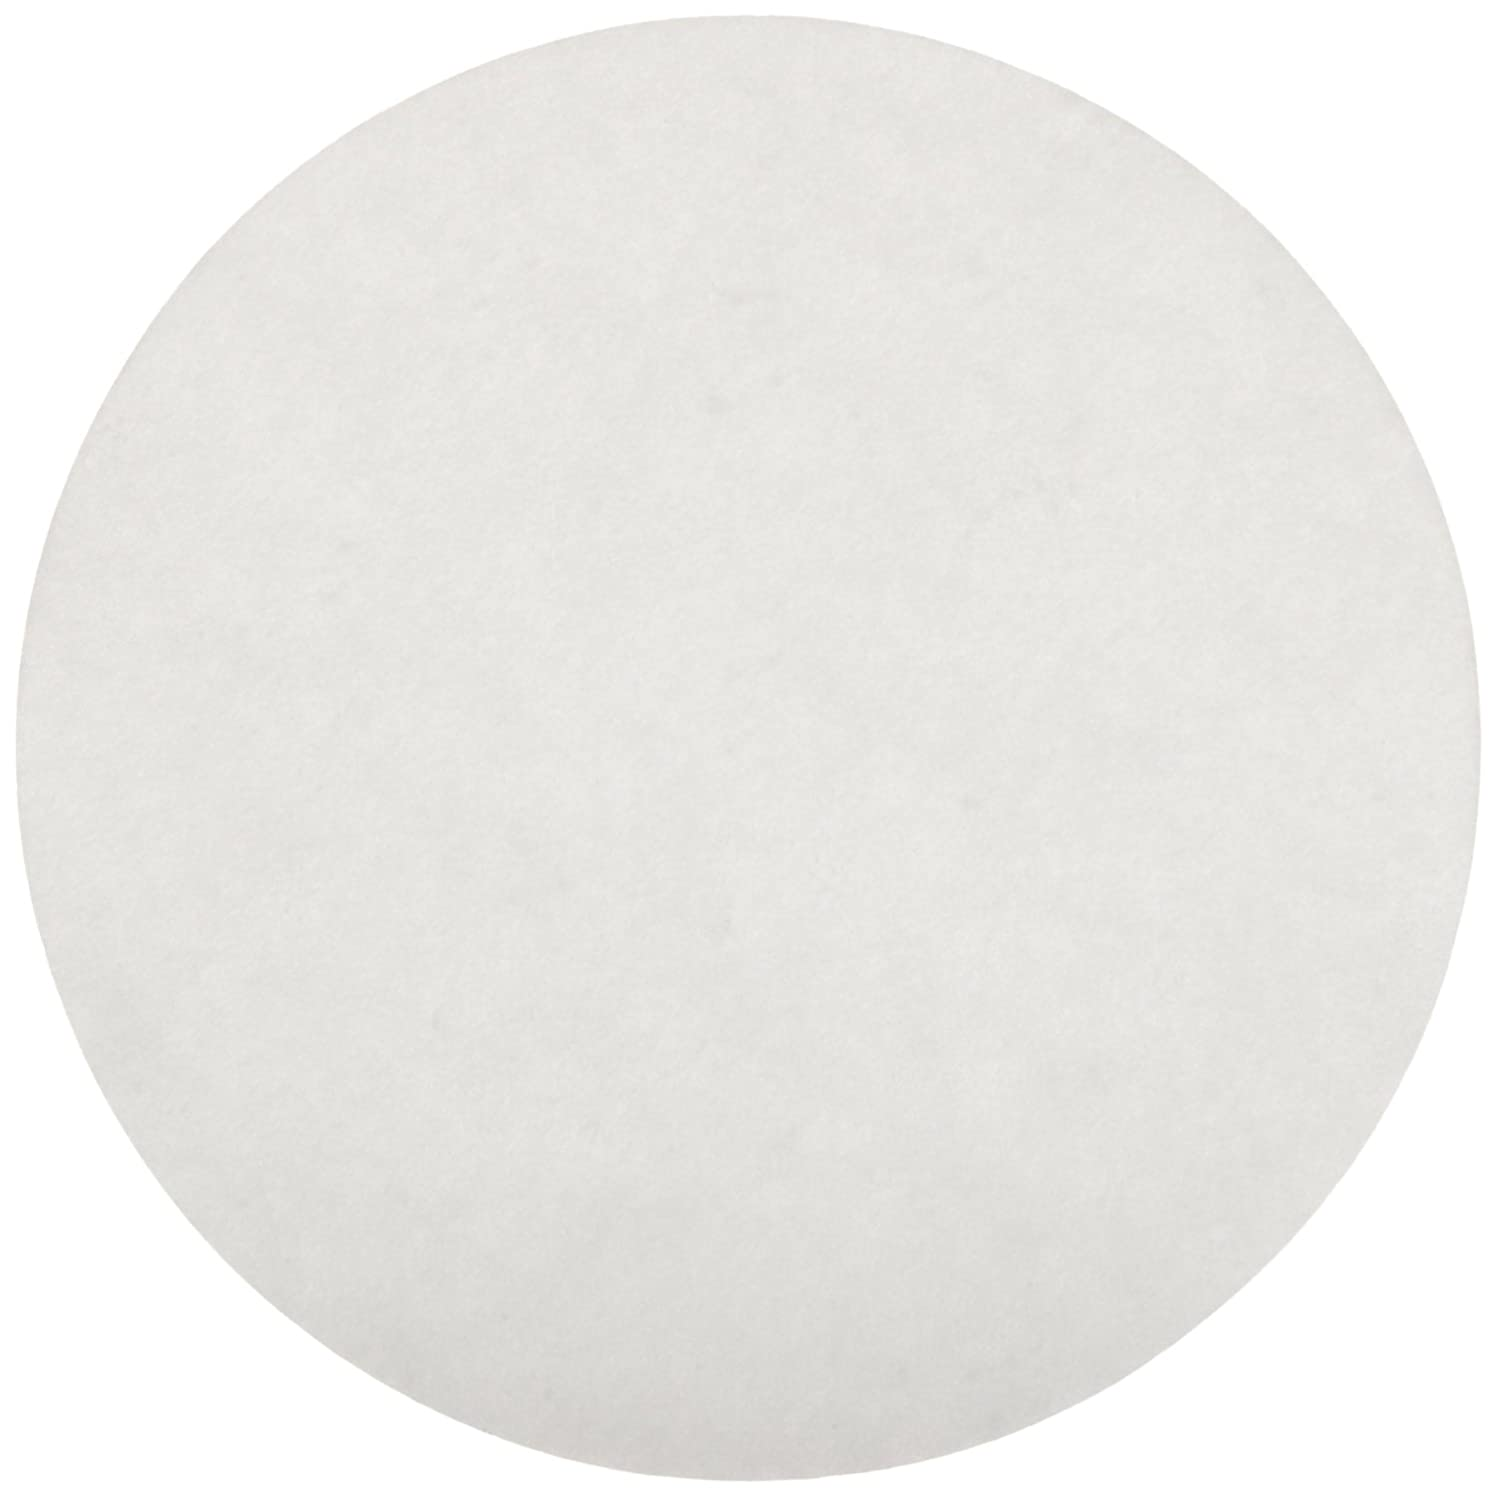 Ahlstrom 6010-1250 Qualitative Filter 2.5 Micron Popular shop is the lowest price challenge Ranking TOP18 Medium Paper